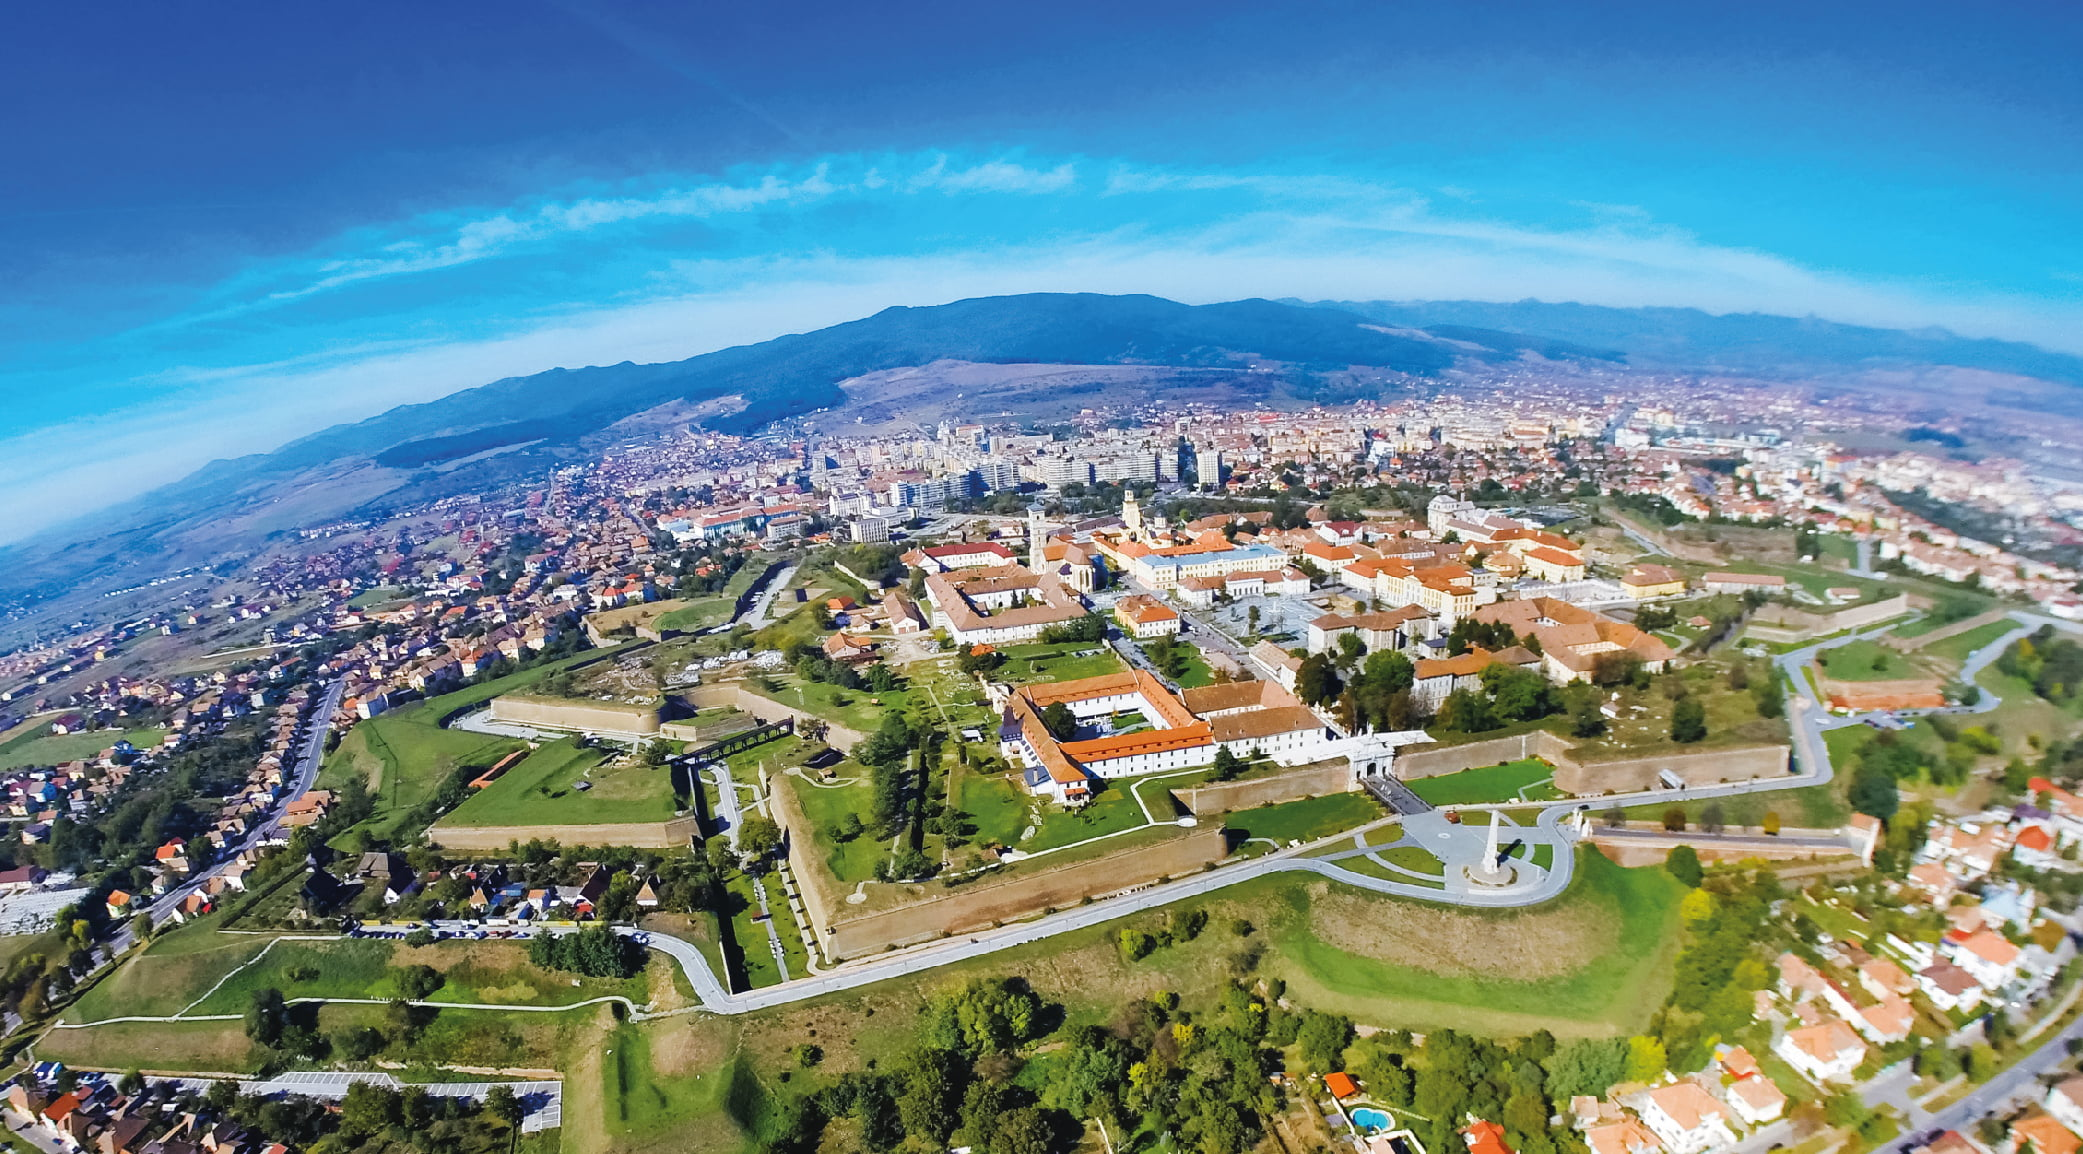 New IoT concepts, LoRaWAN® communications and unprecedented integrations with Alba Iulia Smart City 2018 program